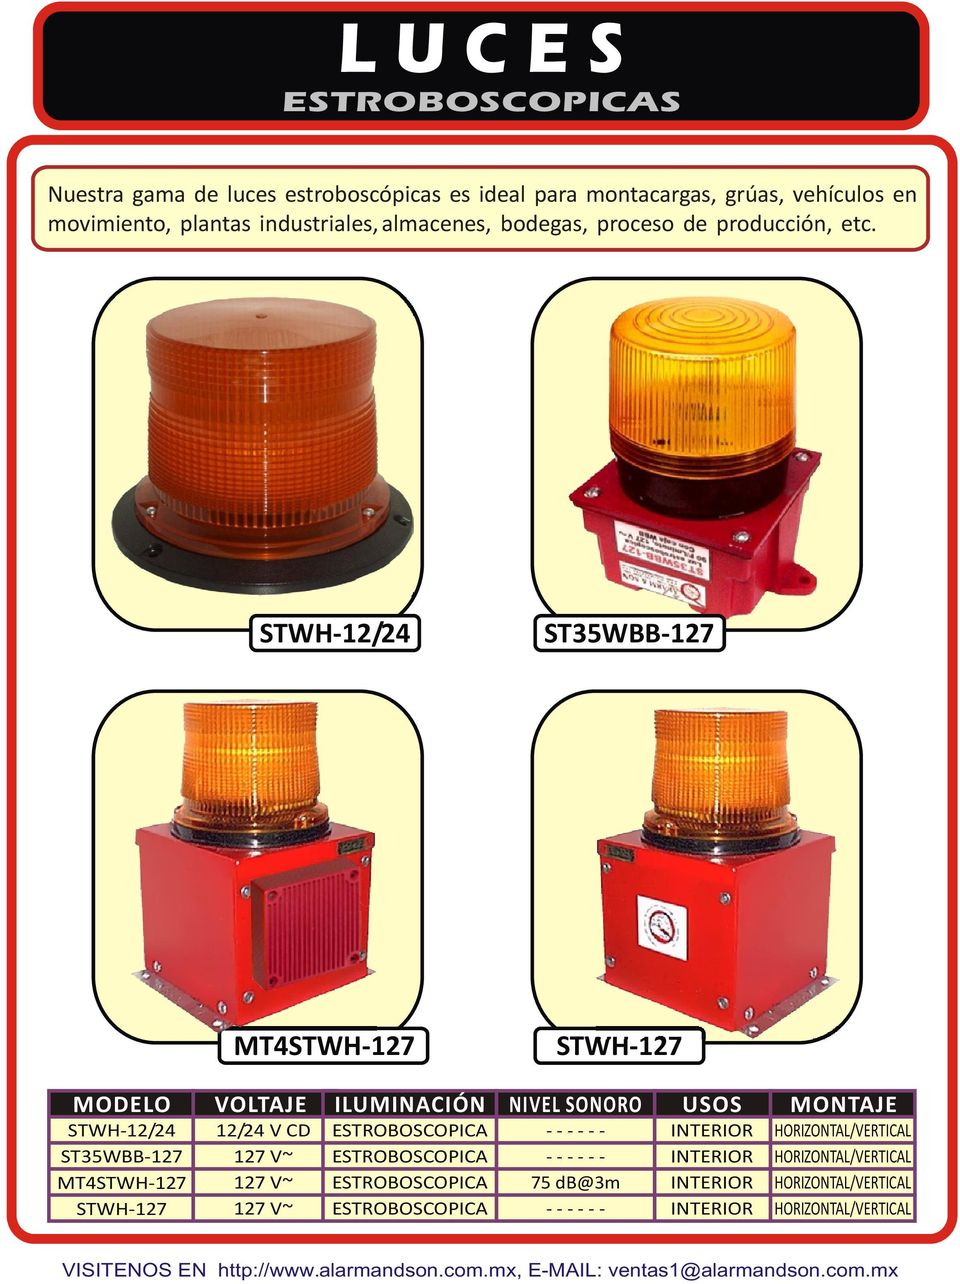 STWH-12/24 ST35WBB-127 MT4STWH-127 STWH-127 MODELO VOLTAJE ILUMINACIÓN NIVEL SONORO USOS MONTAJE STWH-12/24